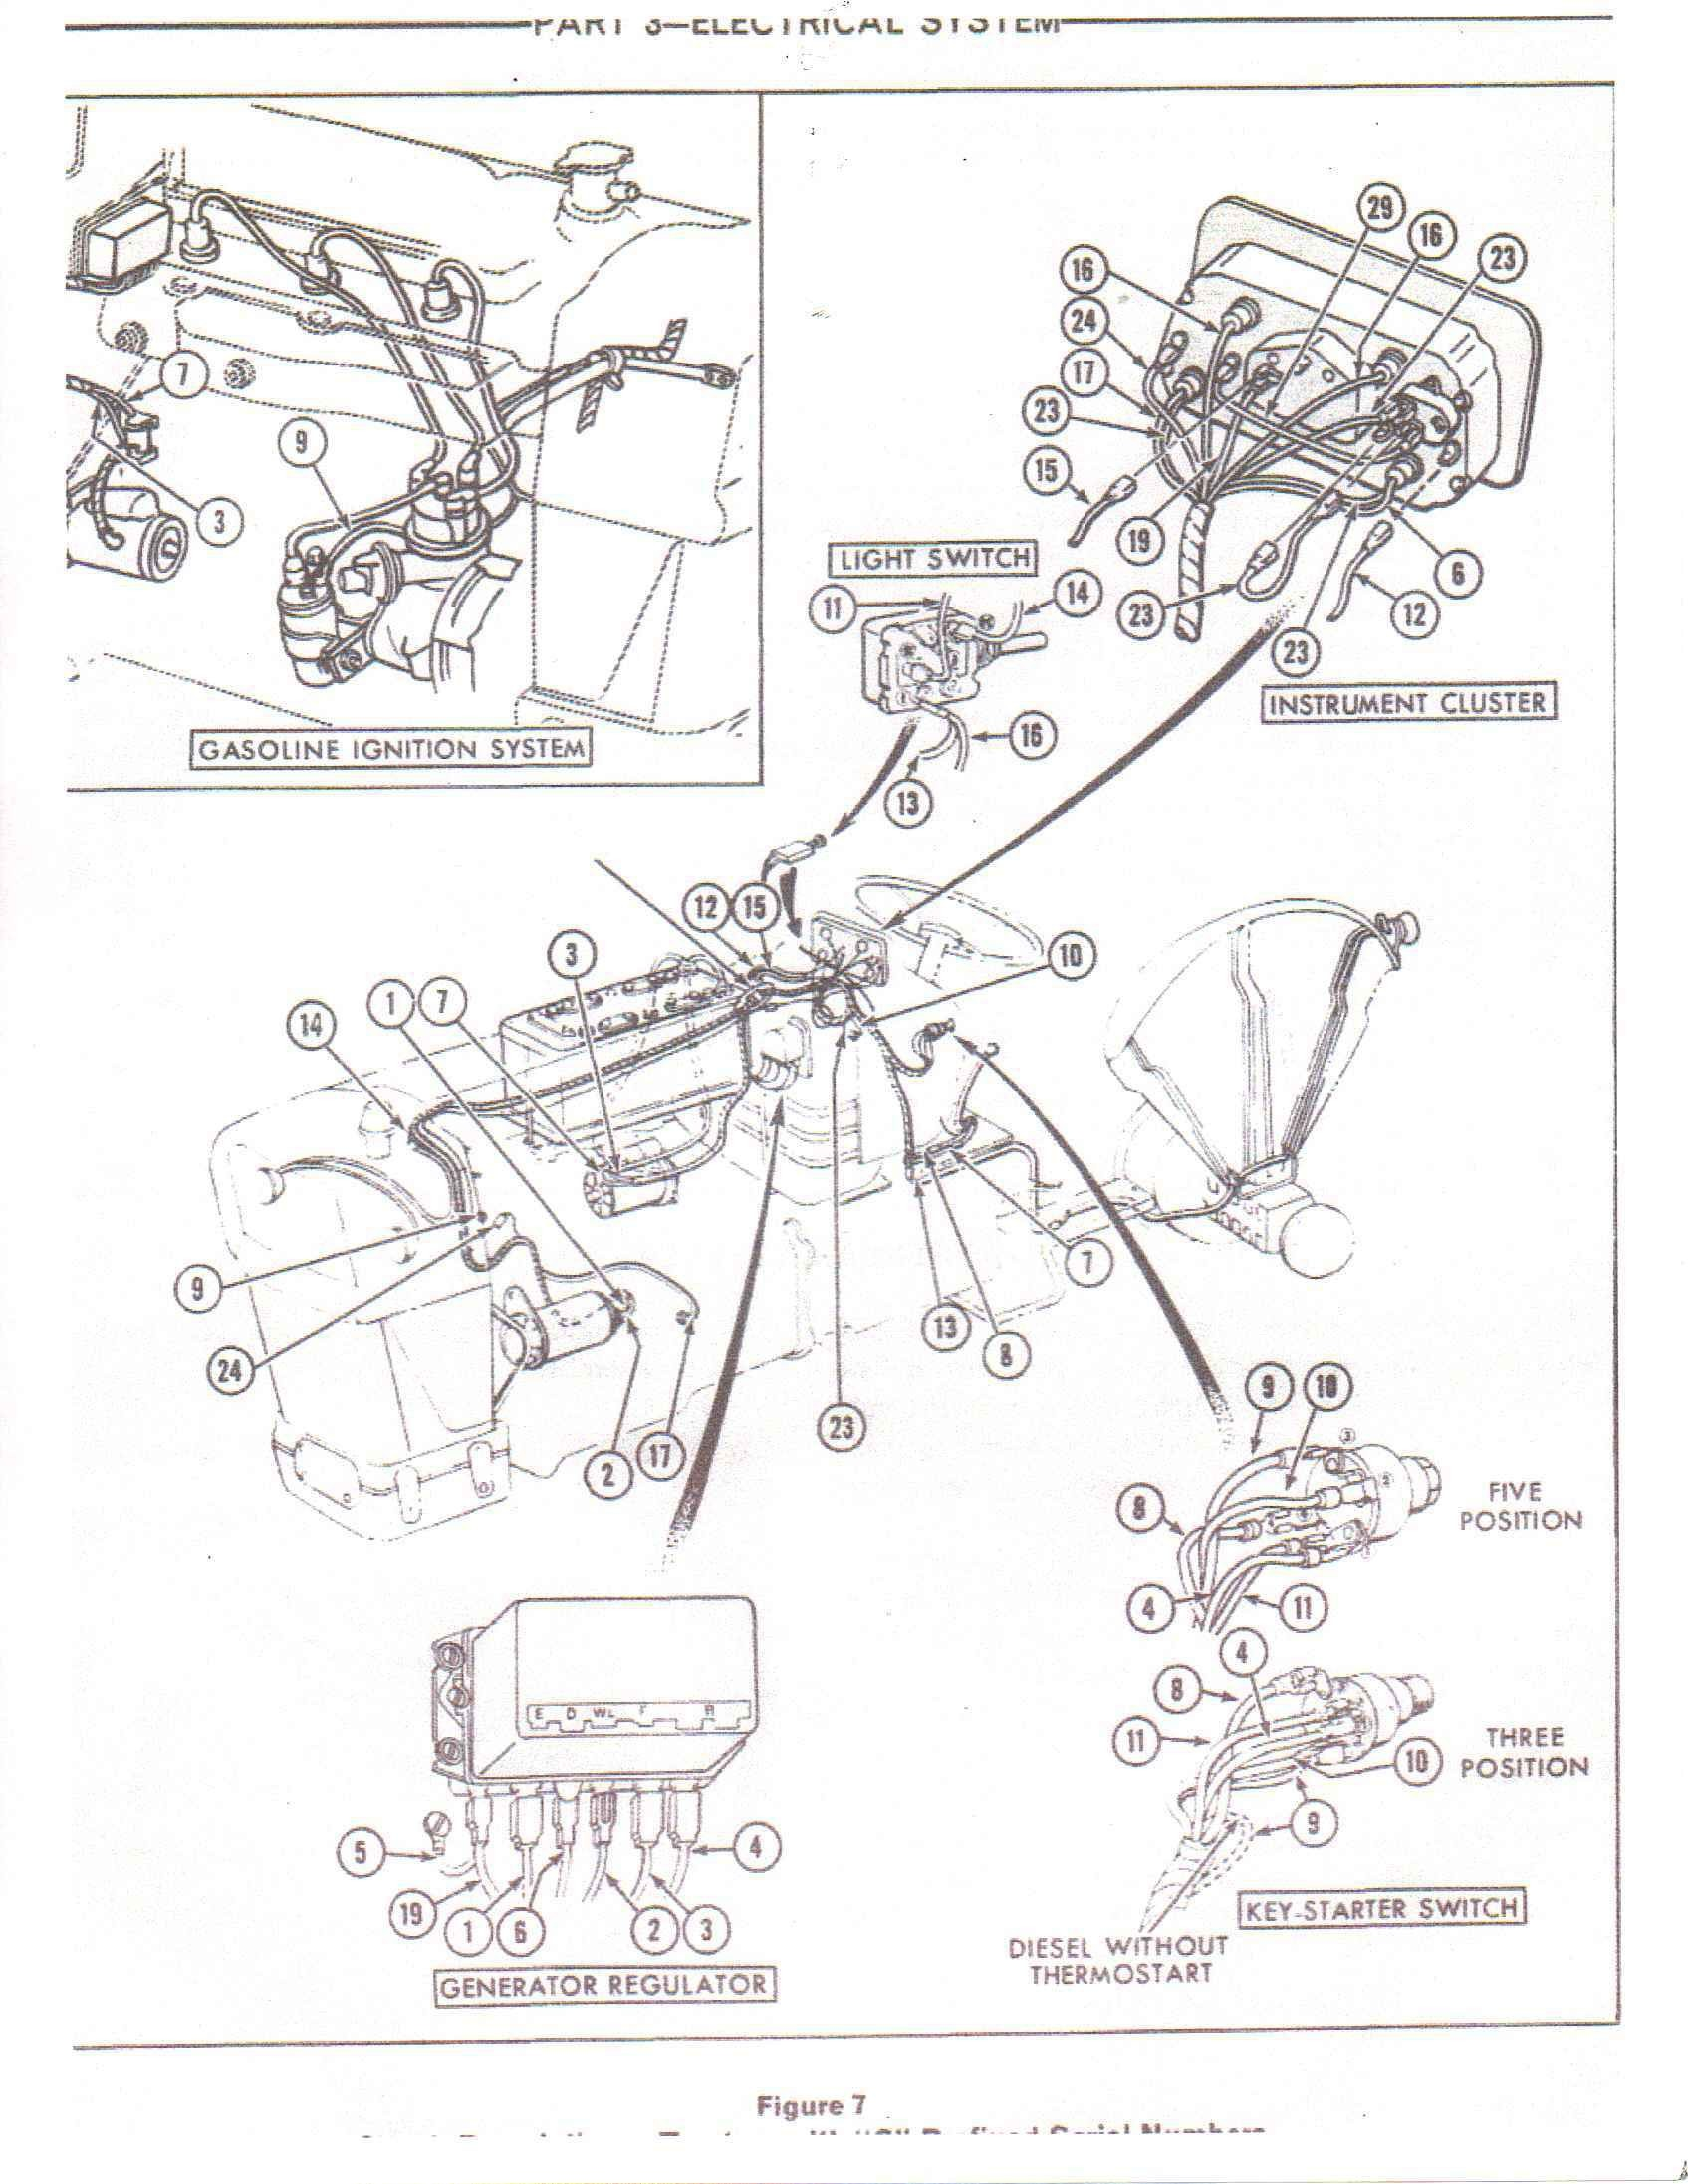 hight resolution of ford 3000 instrument panel wiring diagram wiring diagrams ford 500 wiring diagram ford 3000 tractor instrument panel wiring diagram free picture